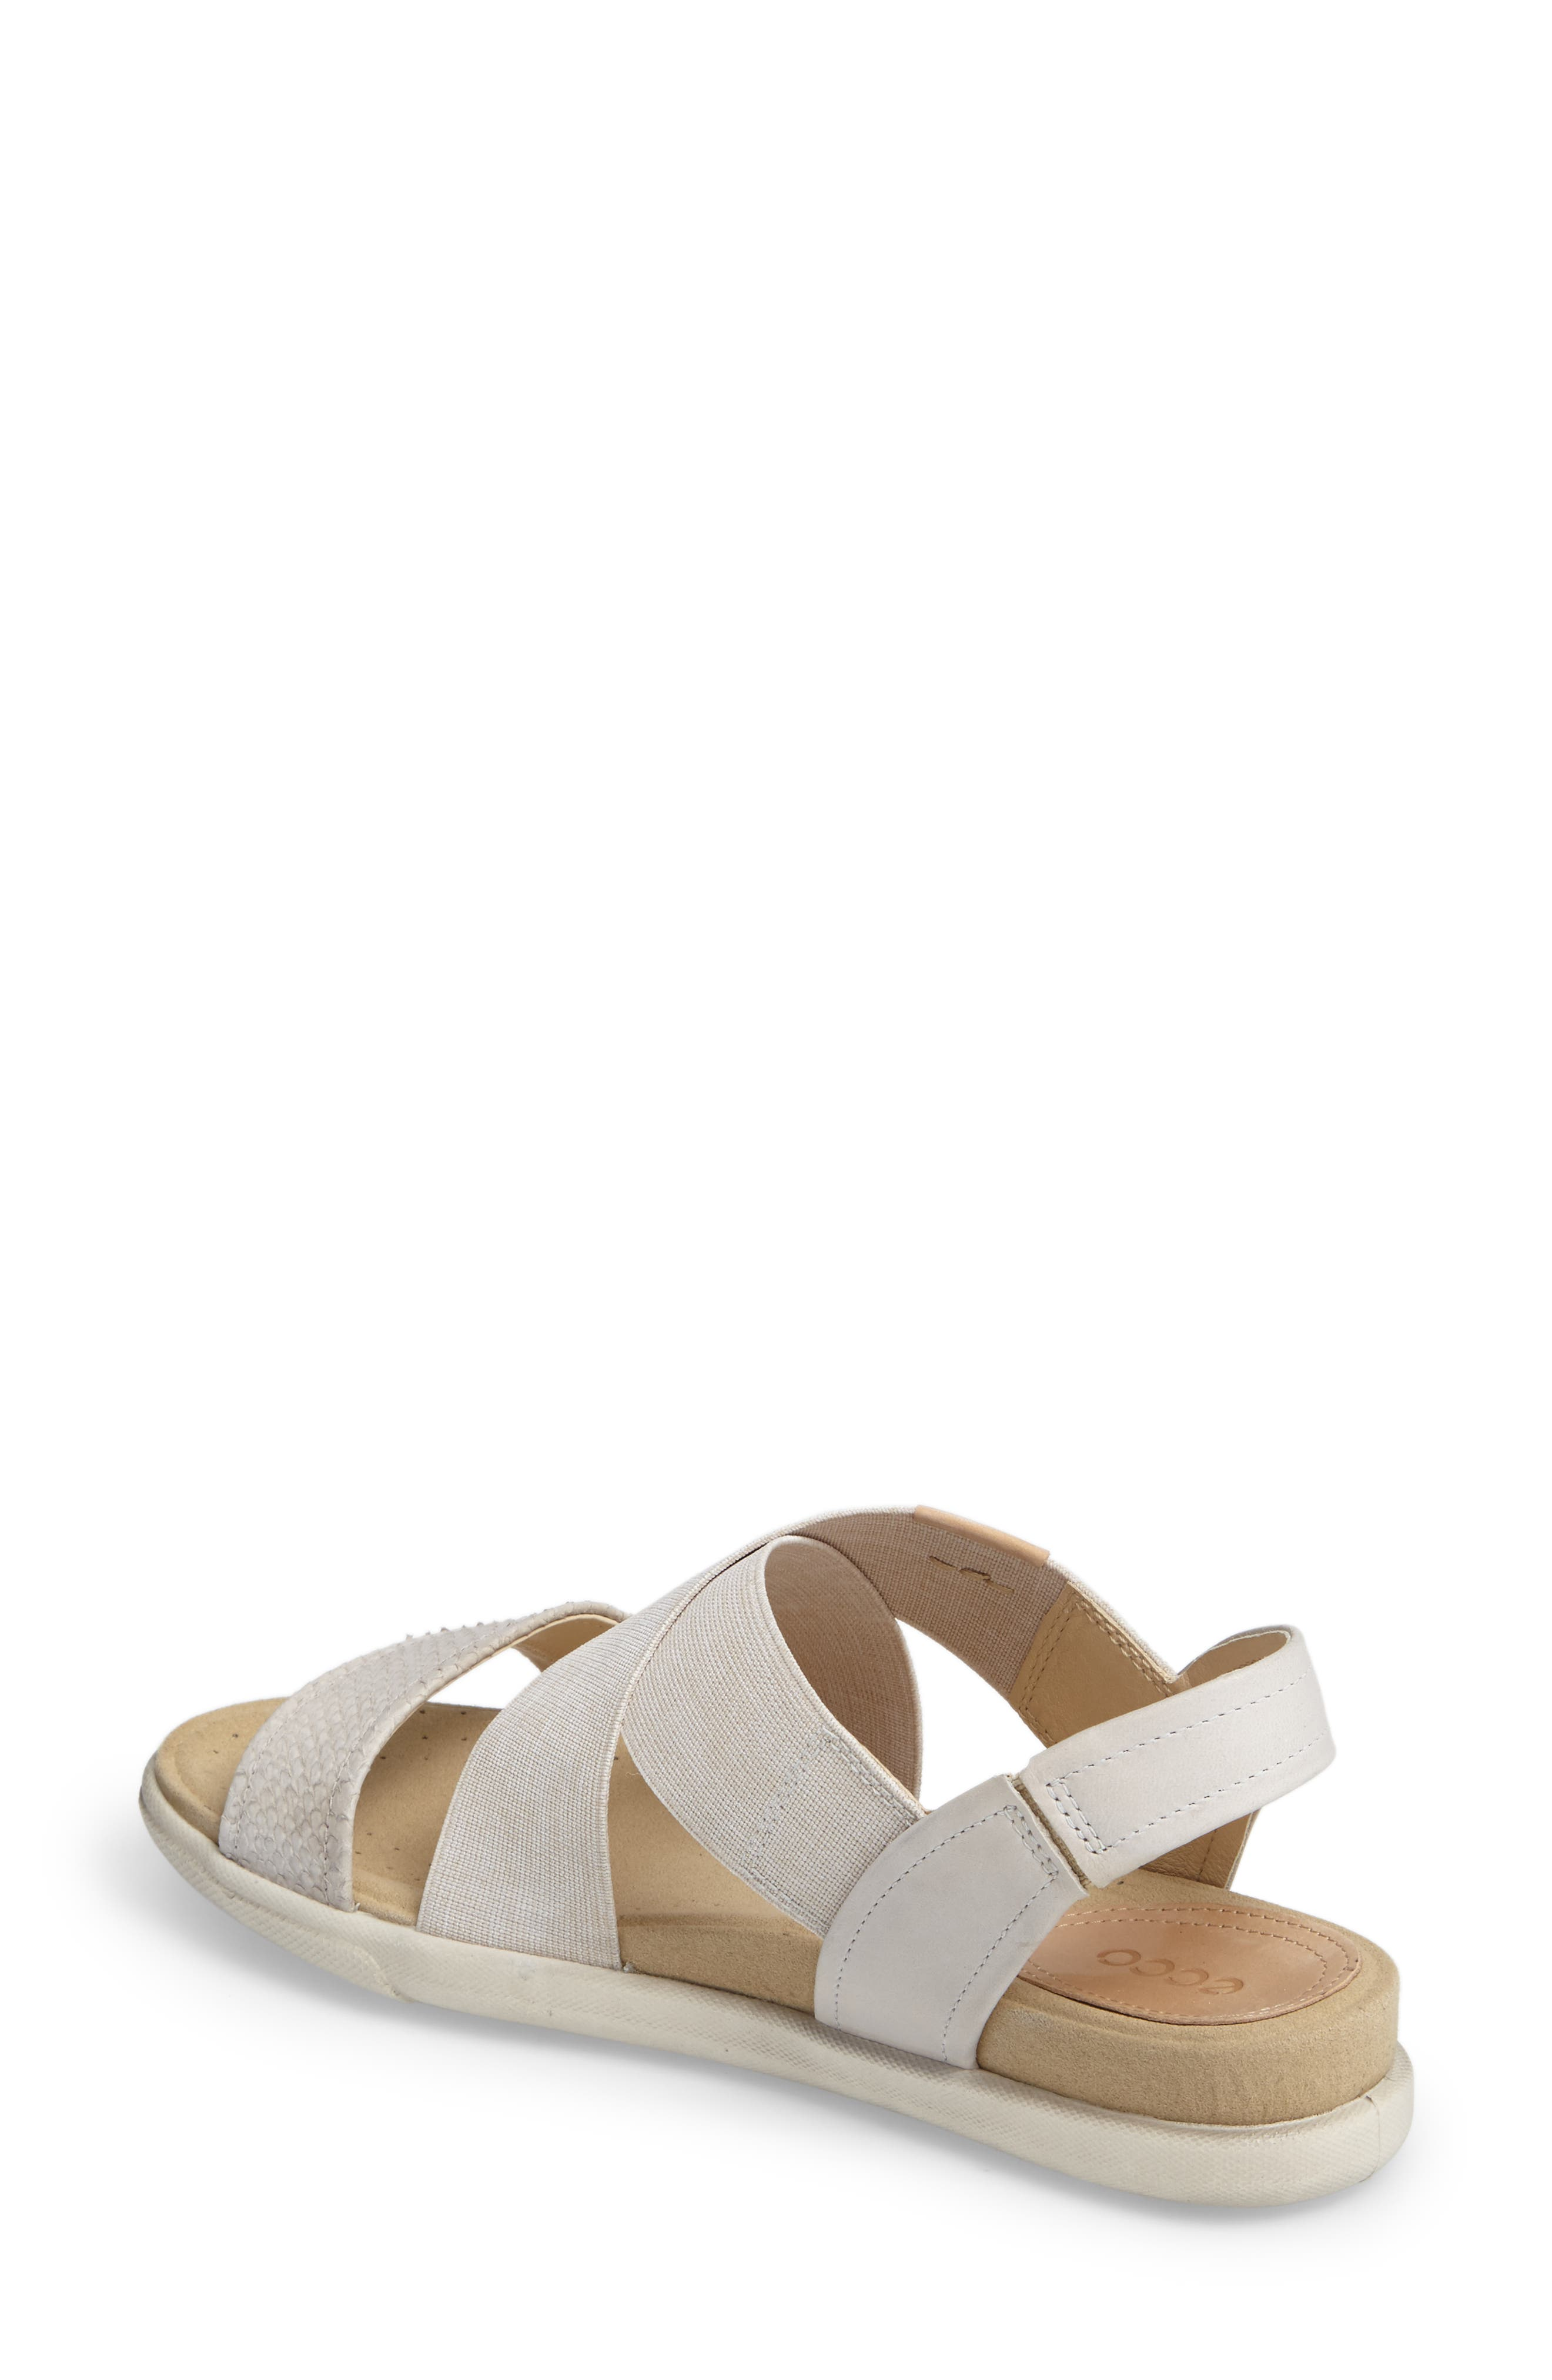 Damara Cross-Strap Sandal,                             Alternate thumbnail 14, color,